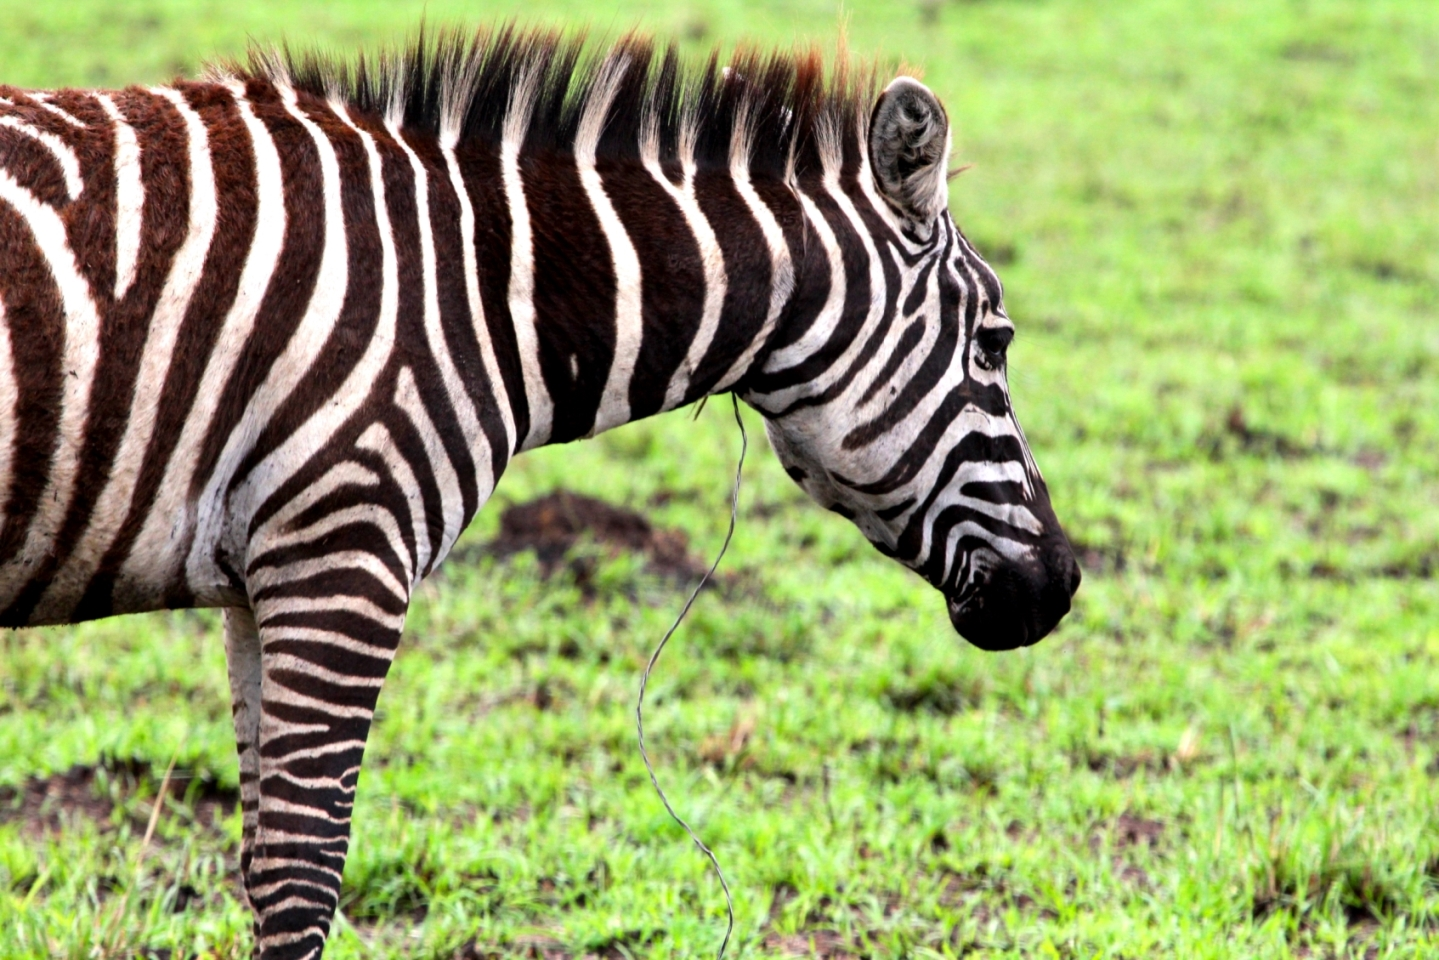 A zebra caught by a poacher's snare. Animals that survive capture in a snare endure injuries for the rest of their lives.